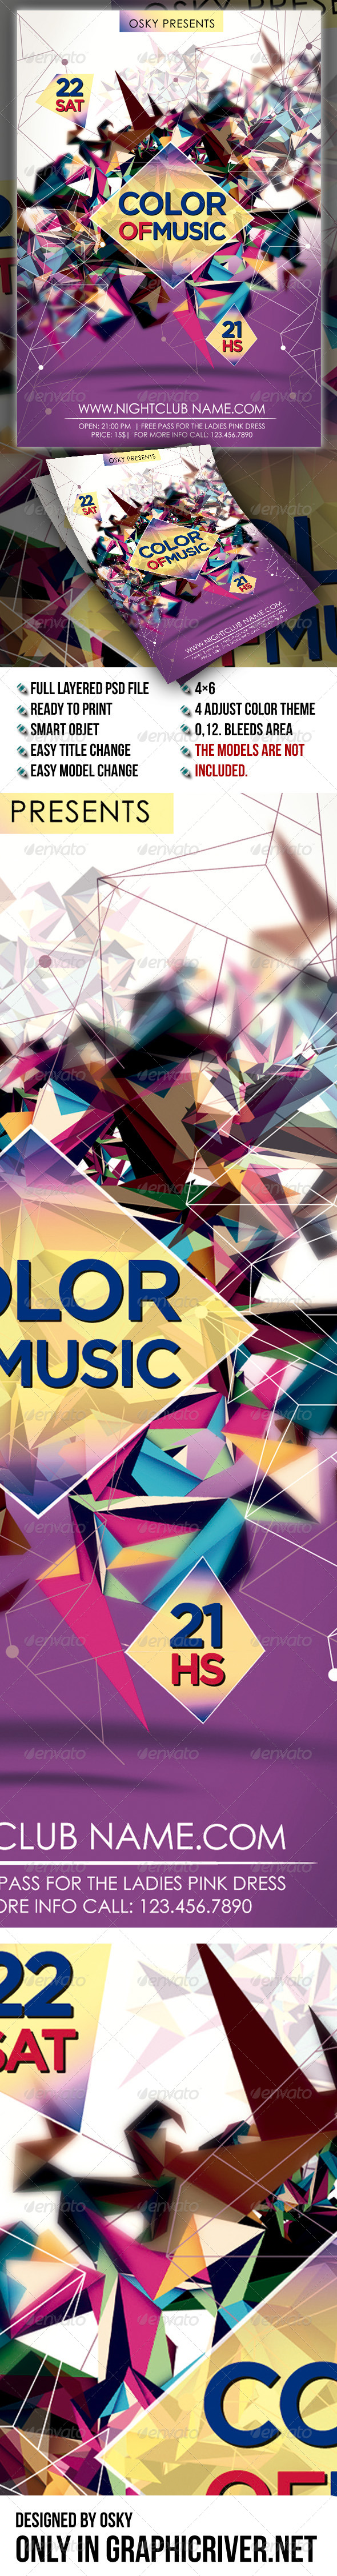 GraphicRiver Color Of Music 6898137